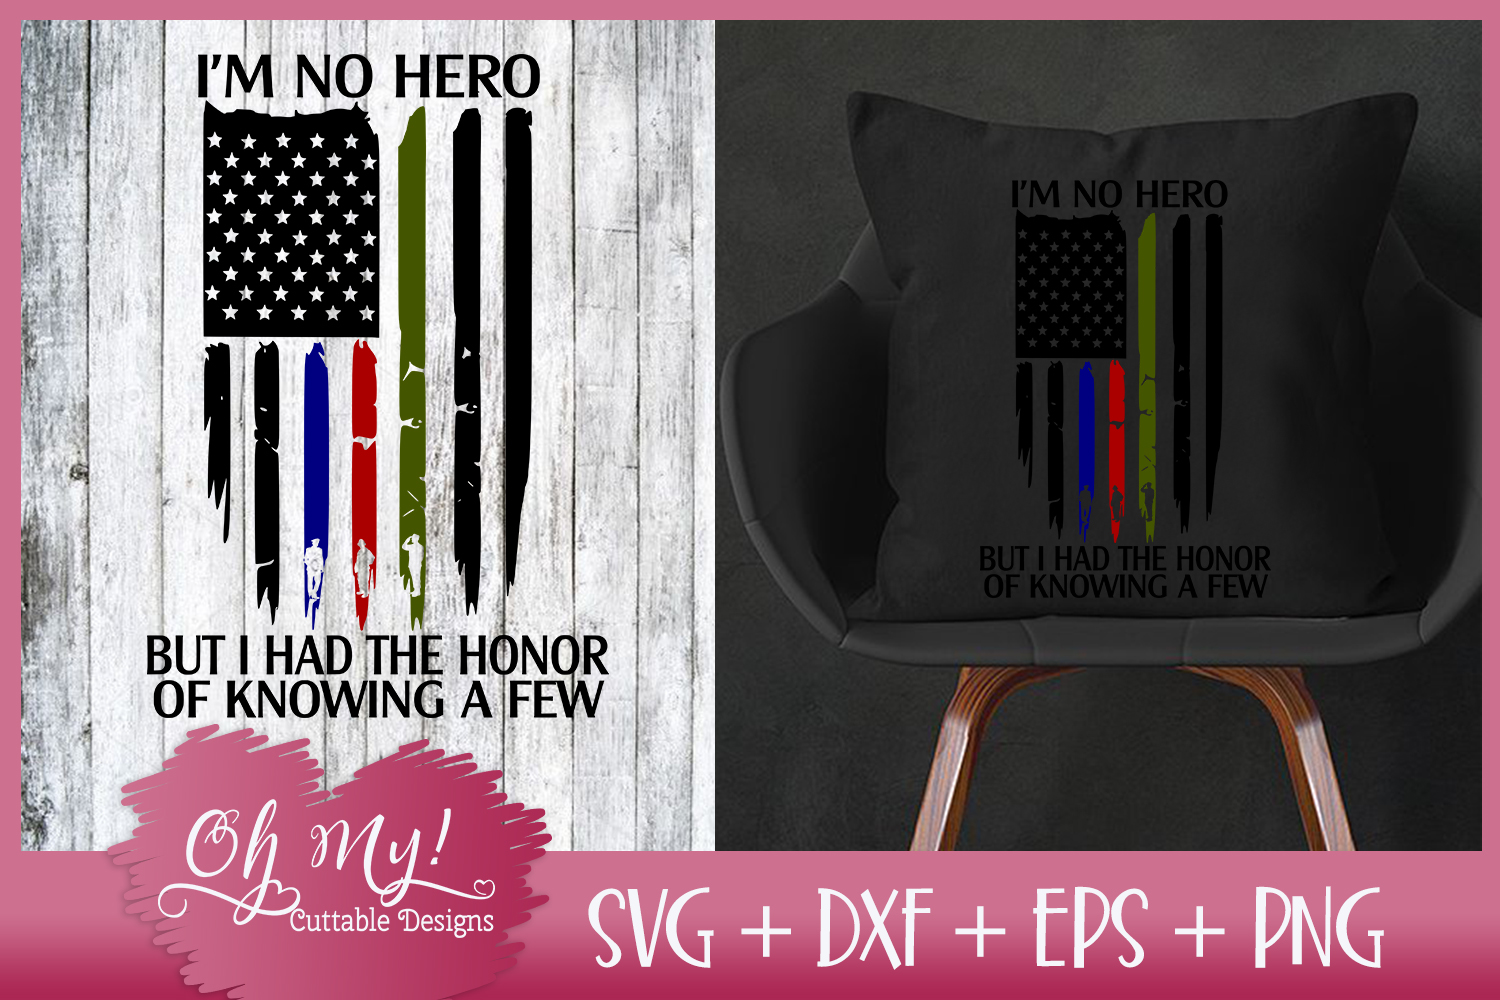 Distresses Flag - I'm No Hero - SVG DXF EPS PNG Cutting File example image 2